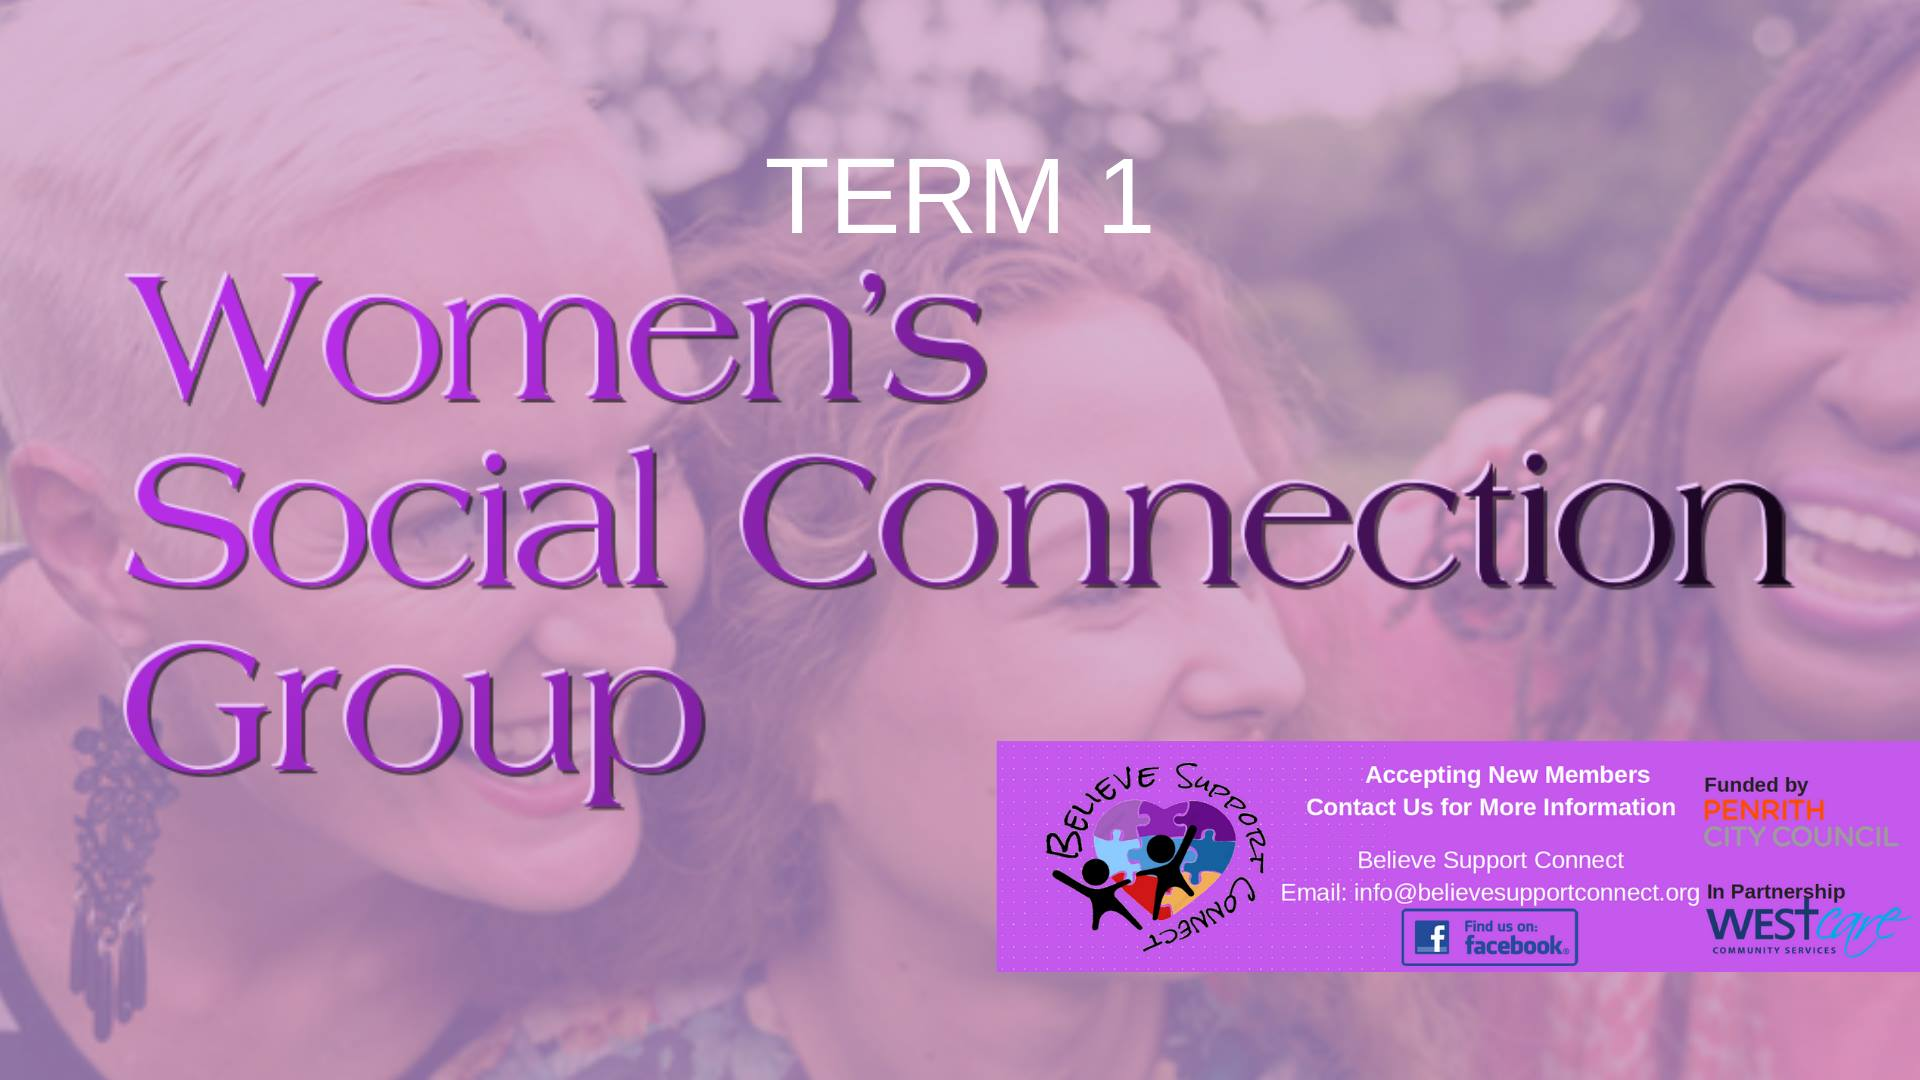 Women's Social Connection